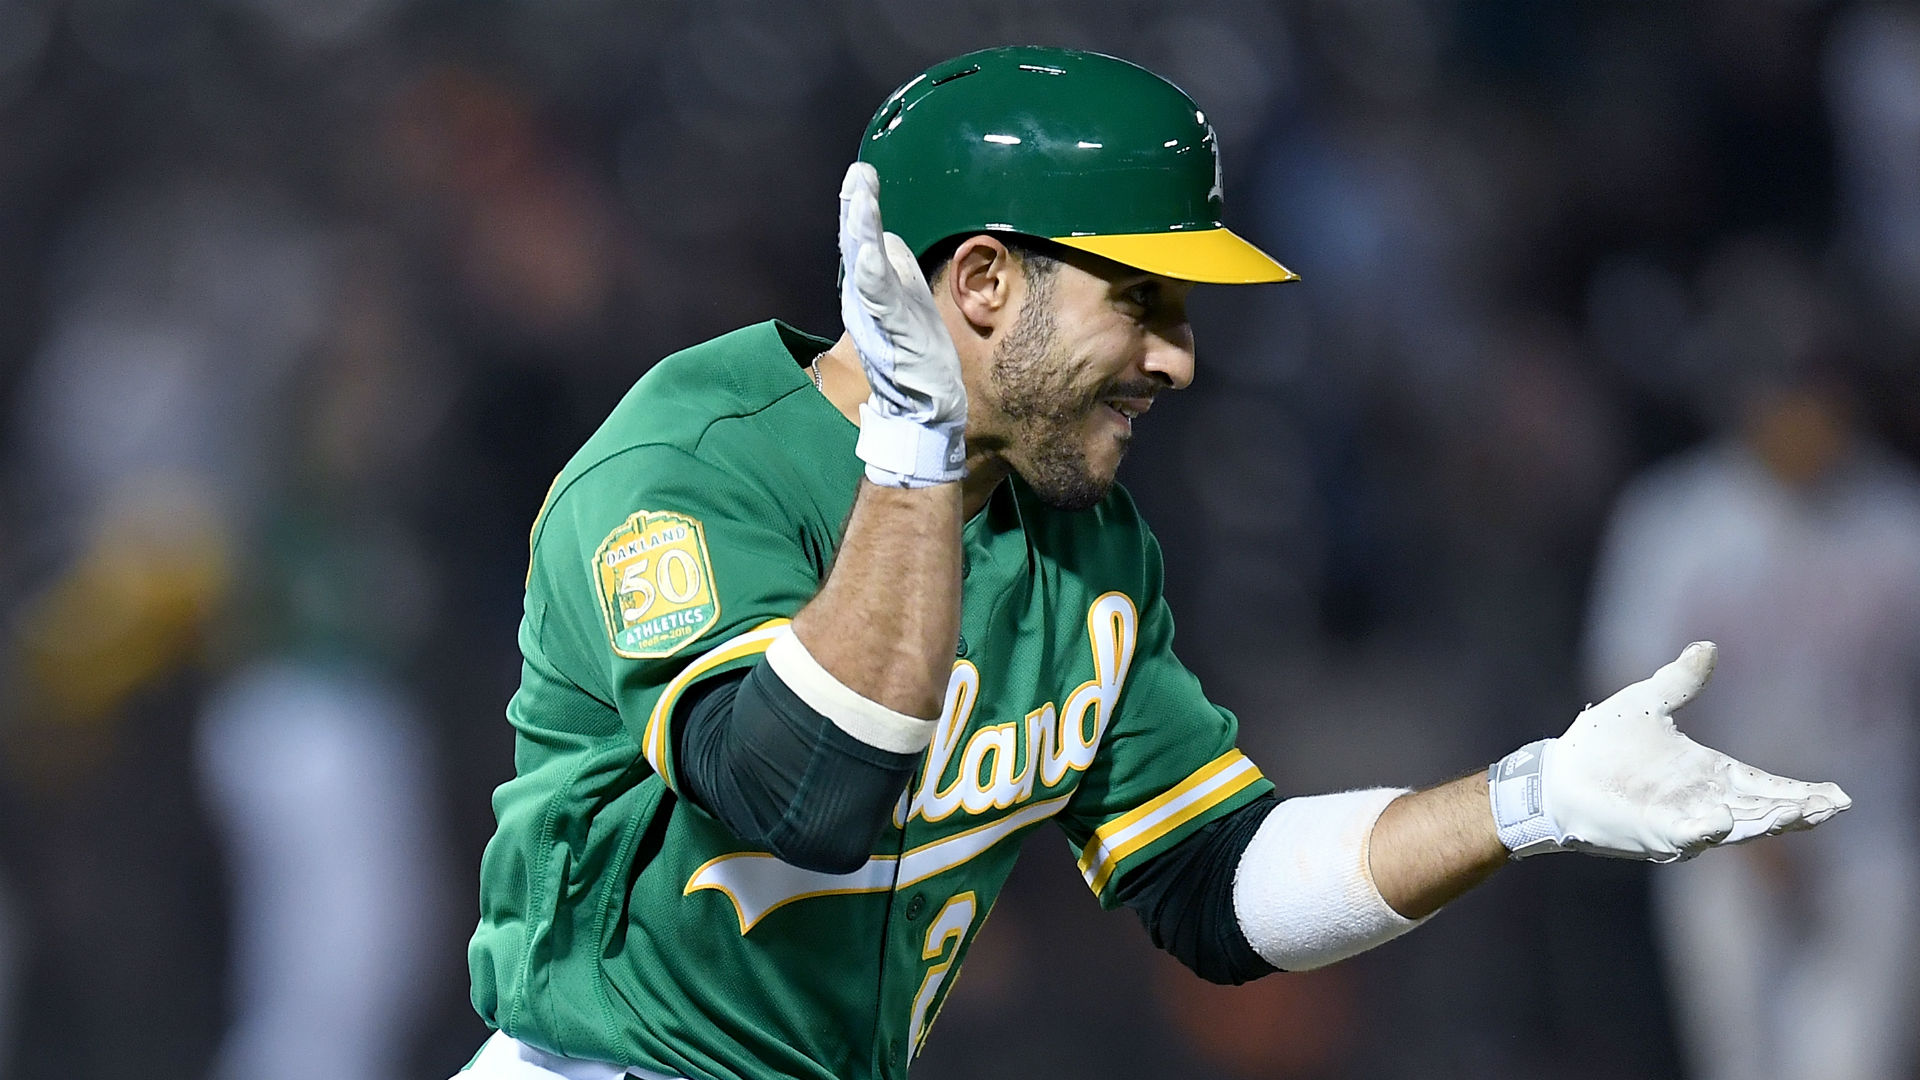 Ramon-Laureano-08122018-usnews-getty-ftr